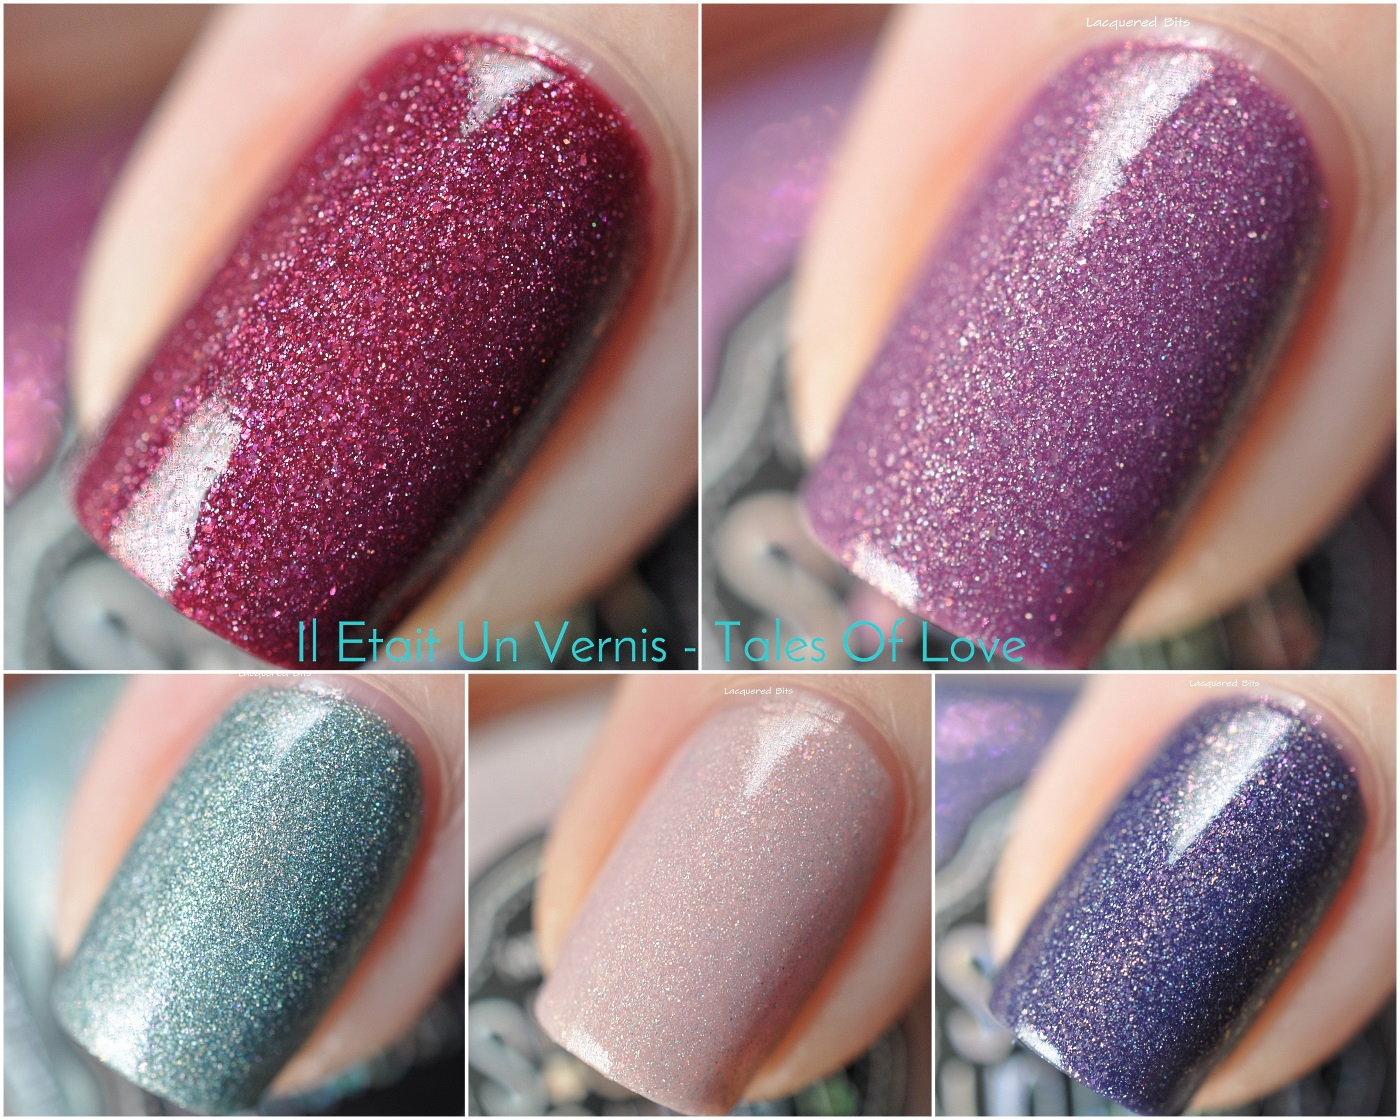 Il Etait Un Vernis Spring 2016 - Tales Of Love - Swatches & Review